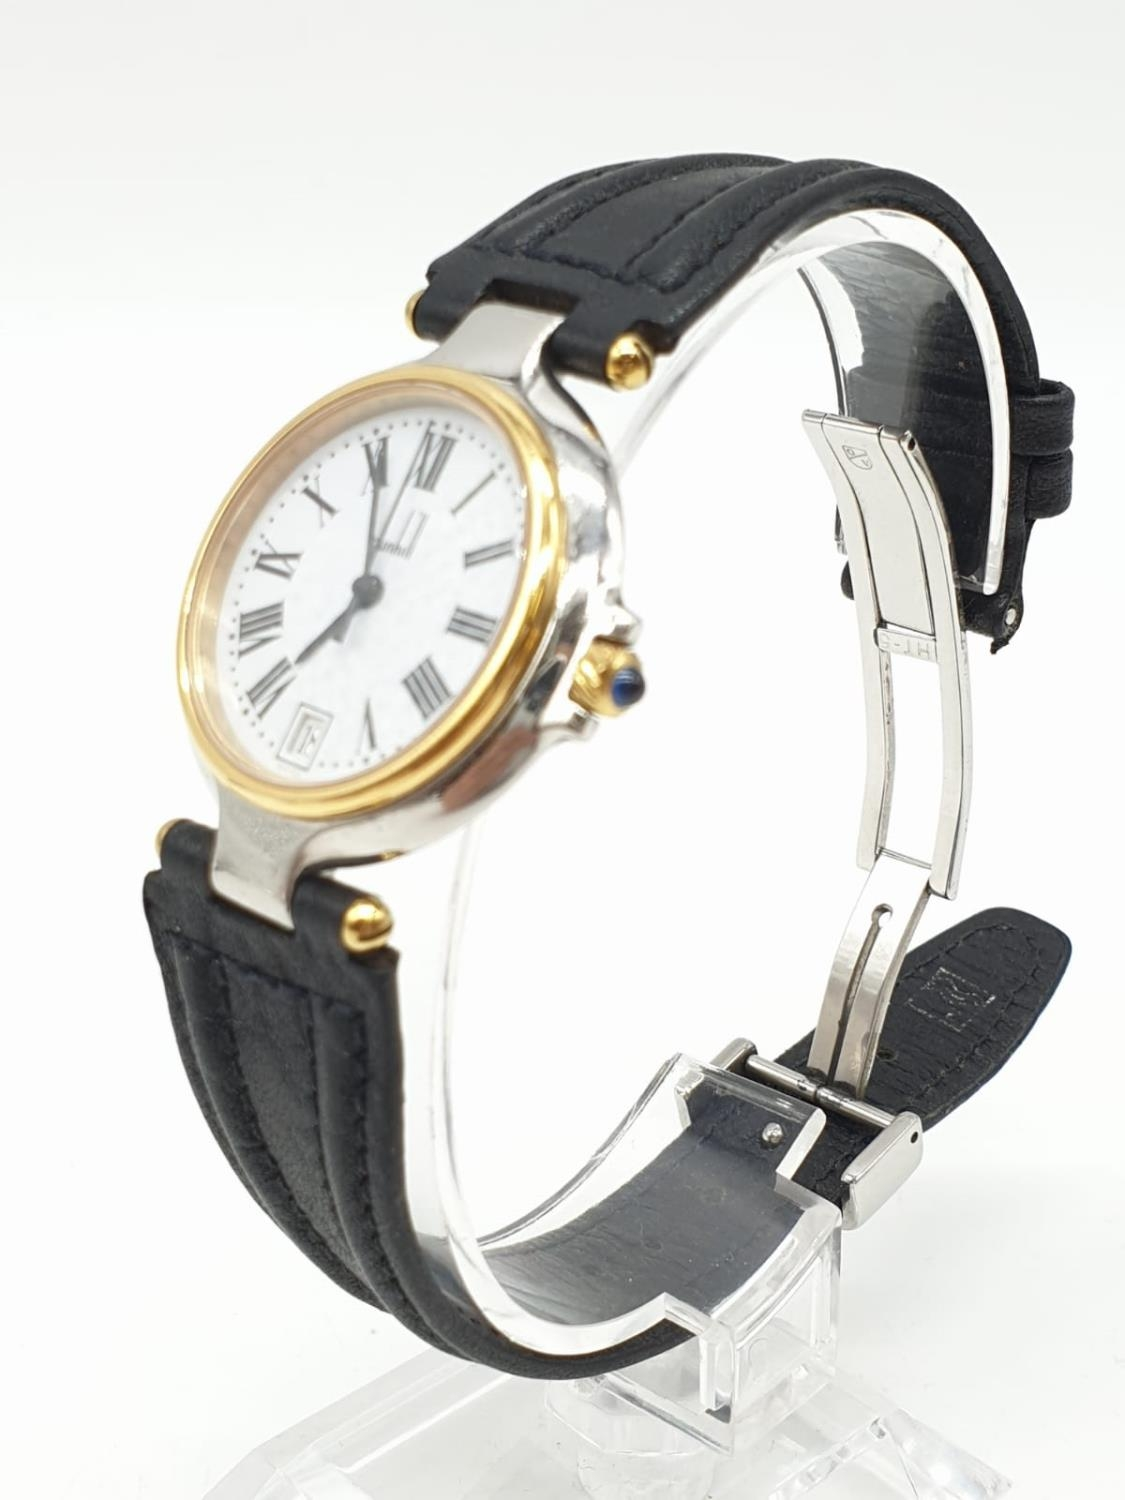 Dunhill Unisex Quartz Watch. New and Unworn. White Face with Roman Numerals. - Image 2 of 4